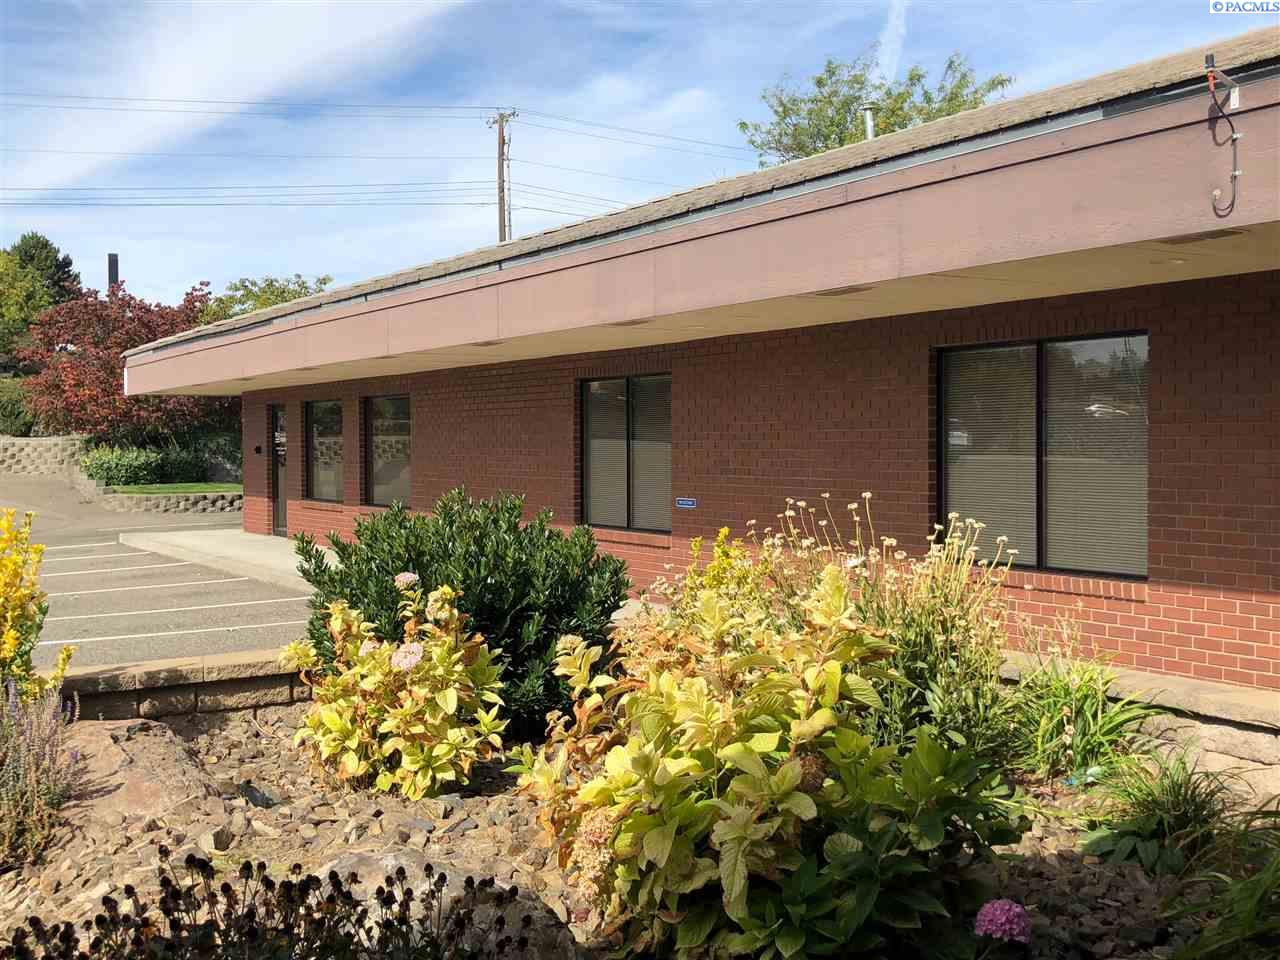 Offices for Sale at 602 N Colorado St. - Suite A Kennewick, Washington 99336 United States